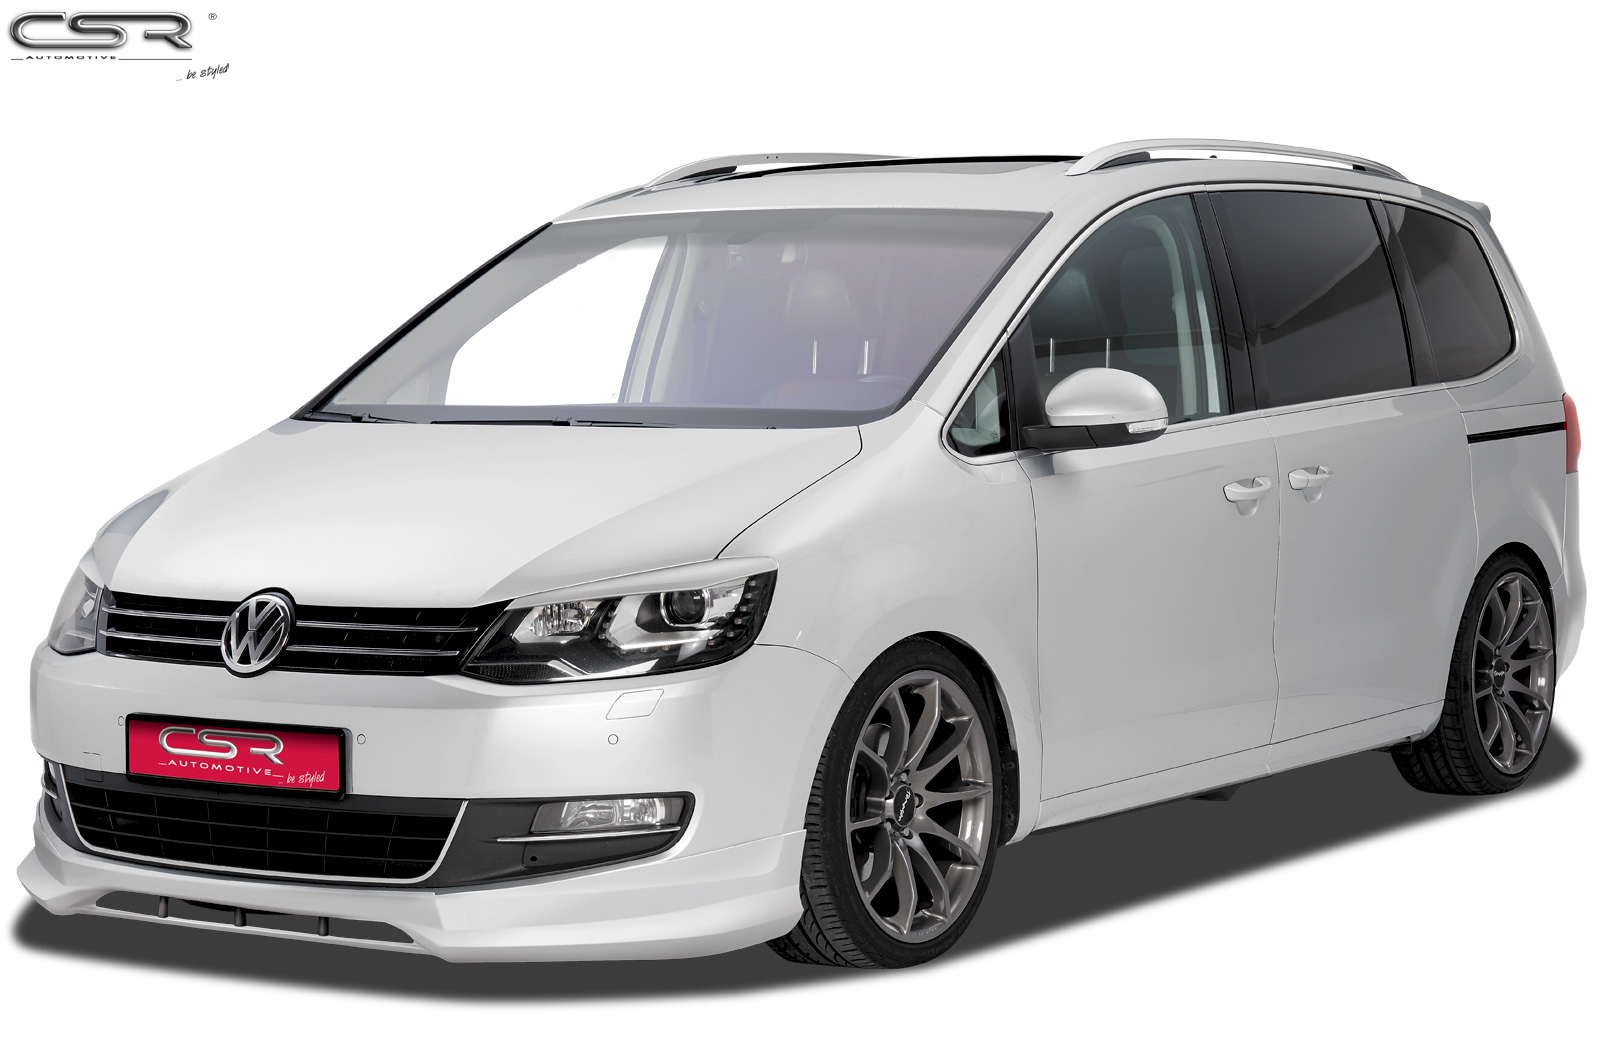 volkswagen vw sharan 7n mra tka sv tel sb254 csr. Black Bedroom Furniture Sets. Home Design Ideas